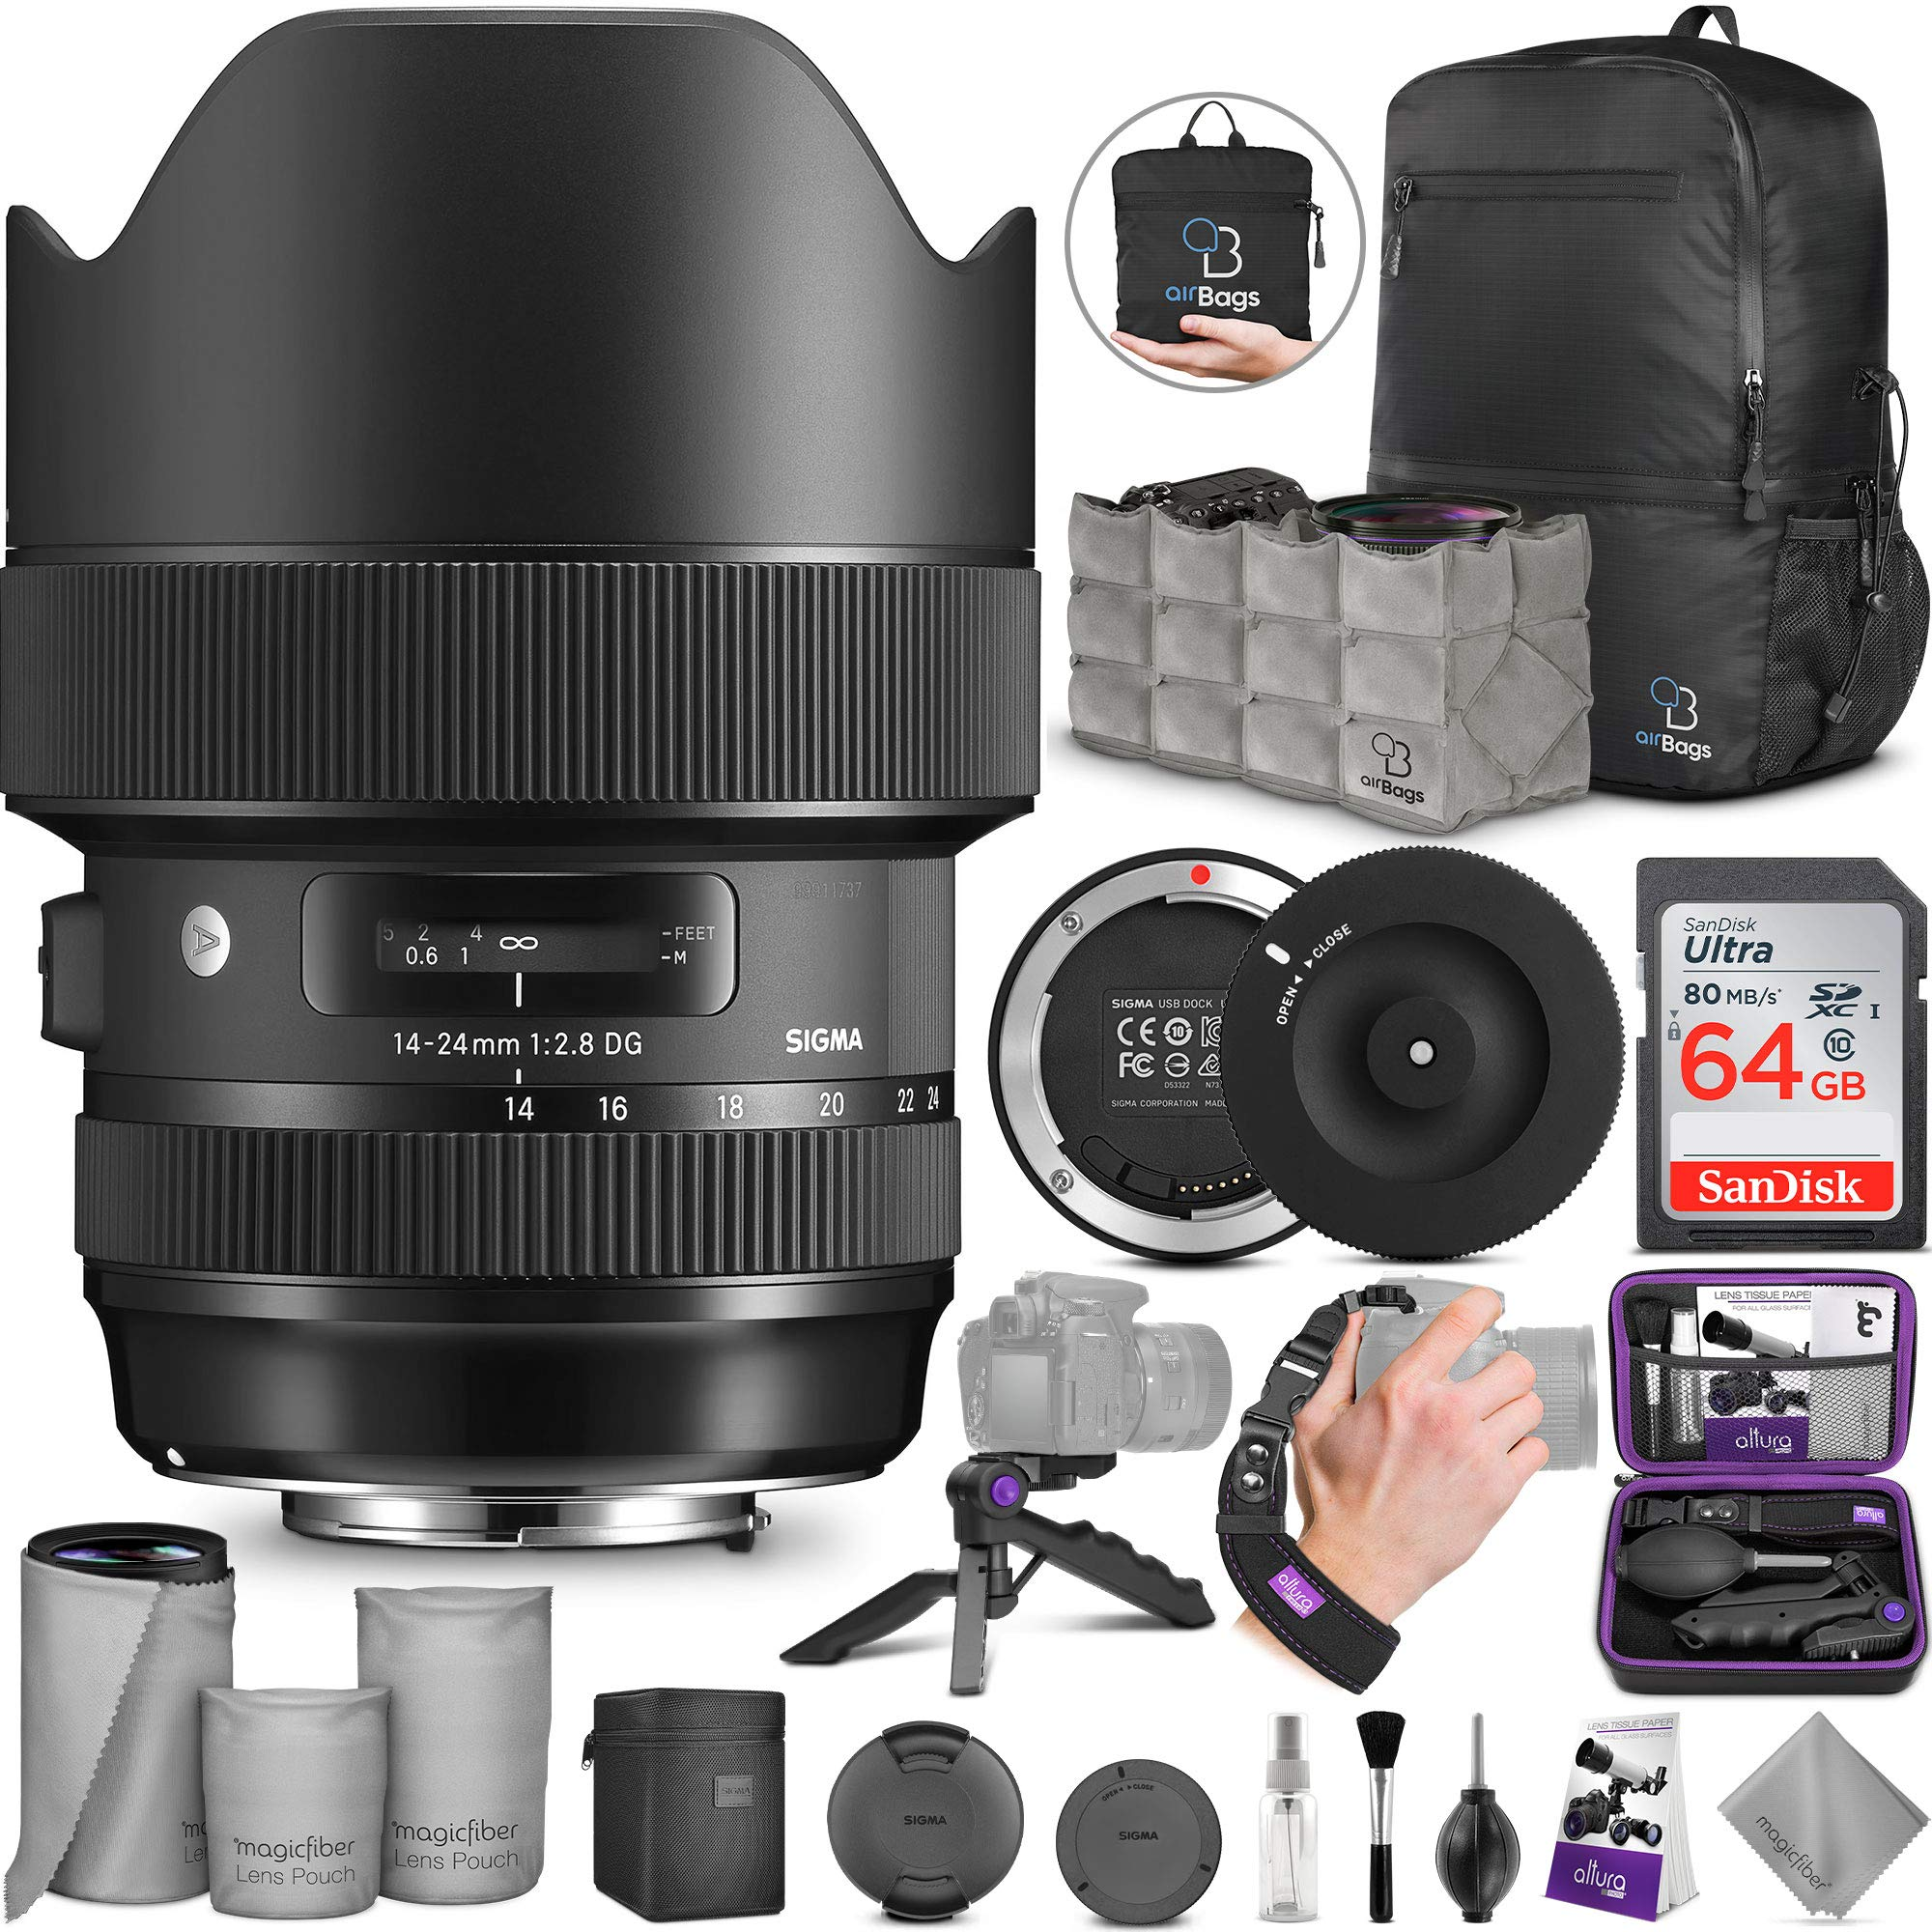 Sigma 14-24mm f/2.8 DG HSM Art Lens for Canon EF + Sigma USB Dock with Altura Photo Advanced Accessory and Travel Bundle by Sigma